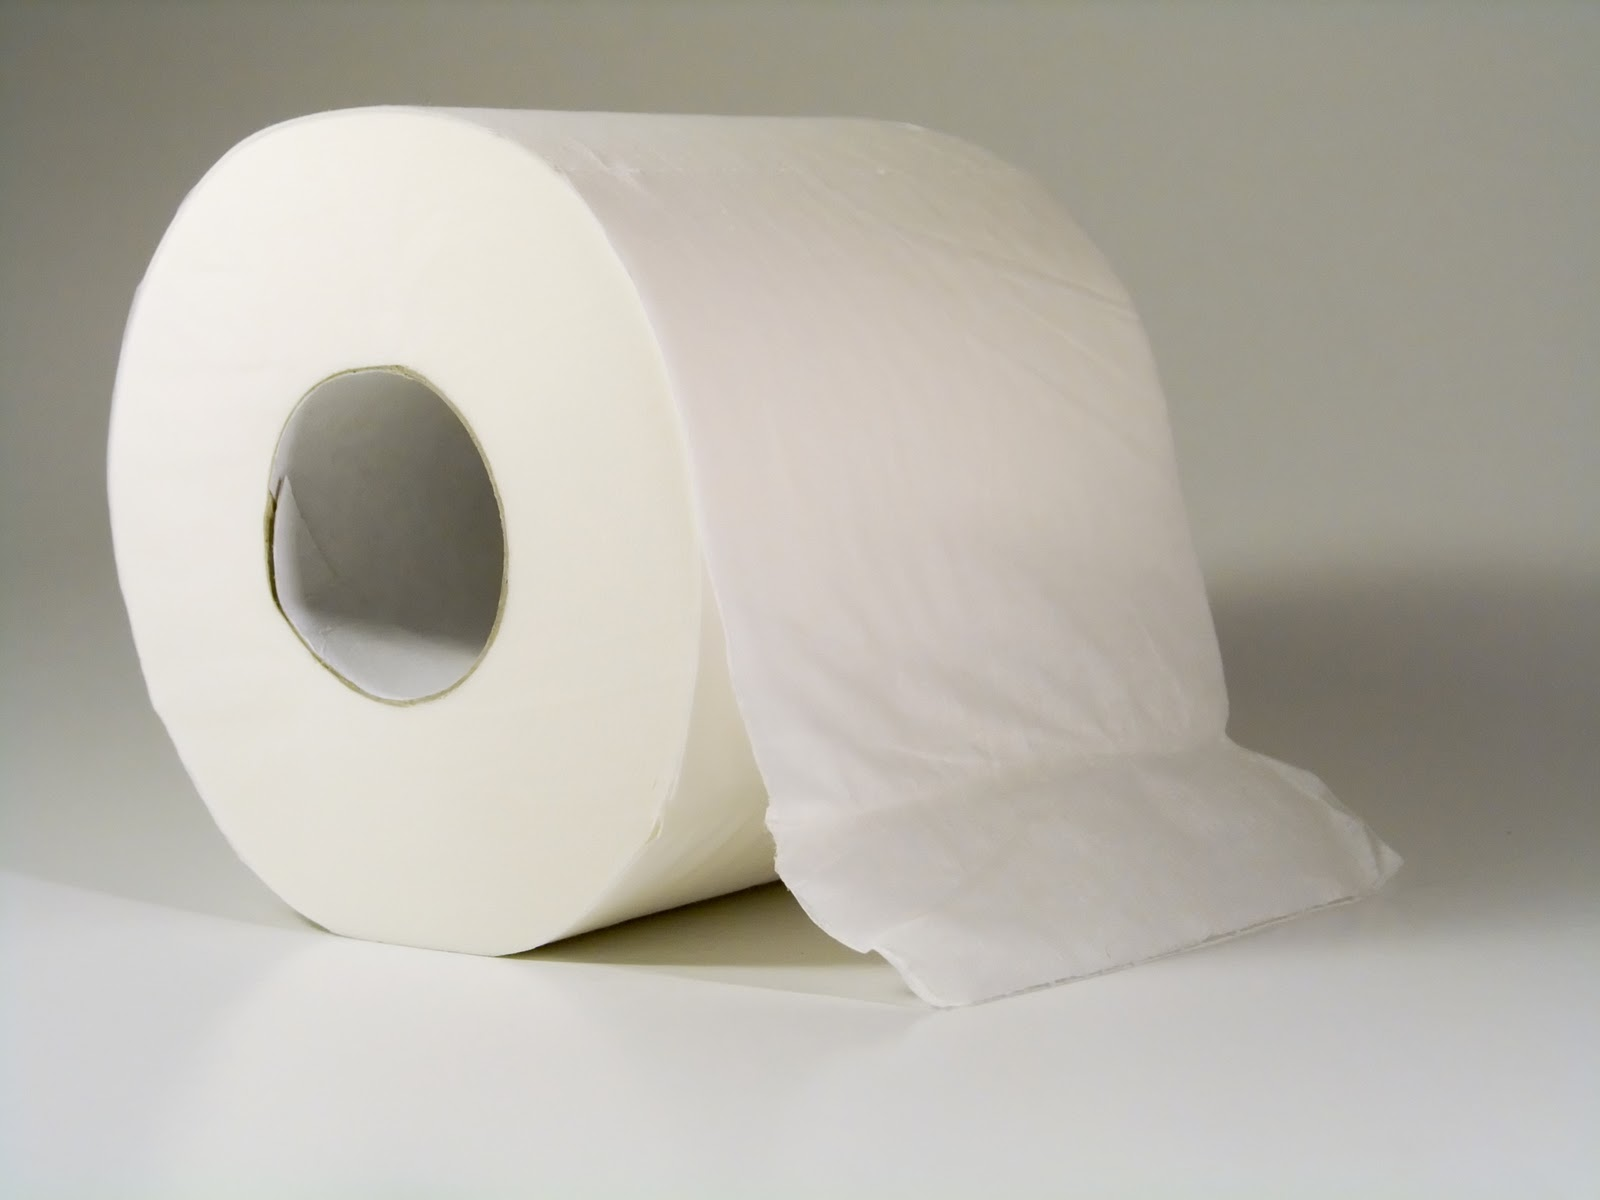 And the toilet paper should always hang down the front, like this one ...